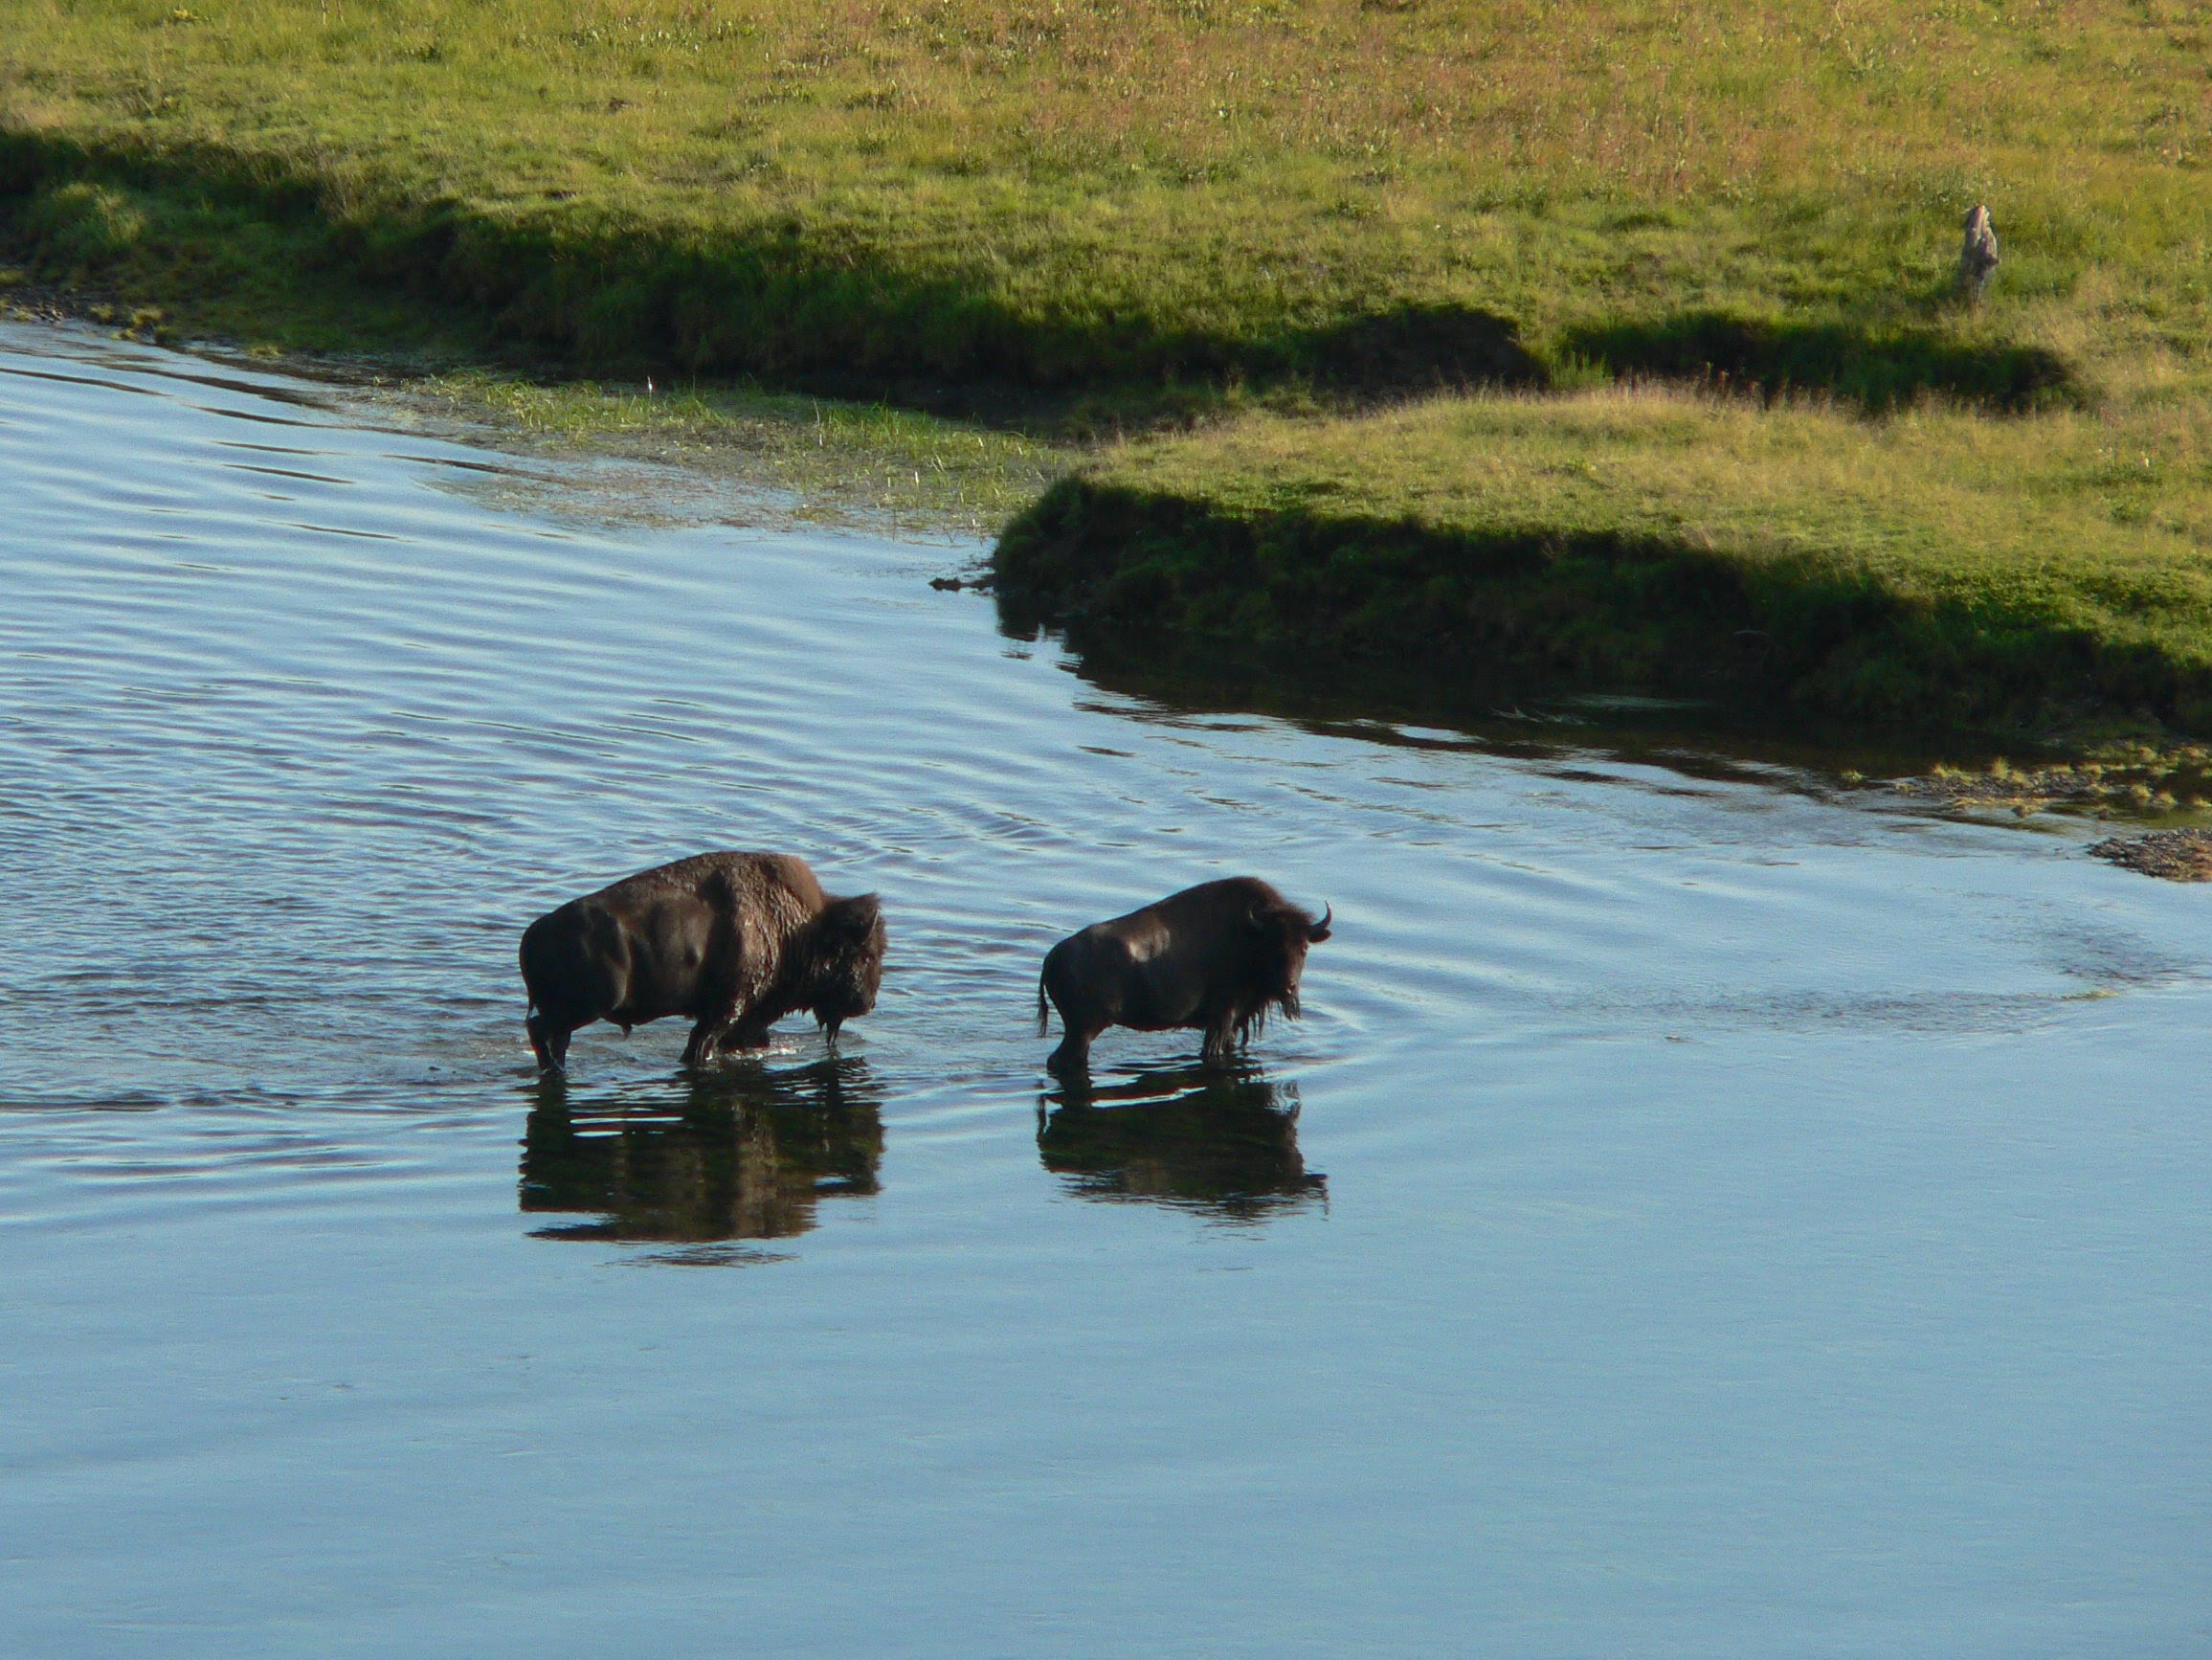 http://upload.wikimedia.org/wikipedia/commons/9/9e/Bison_crossing_a_river.jpg